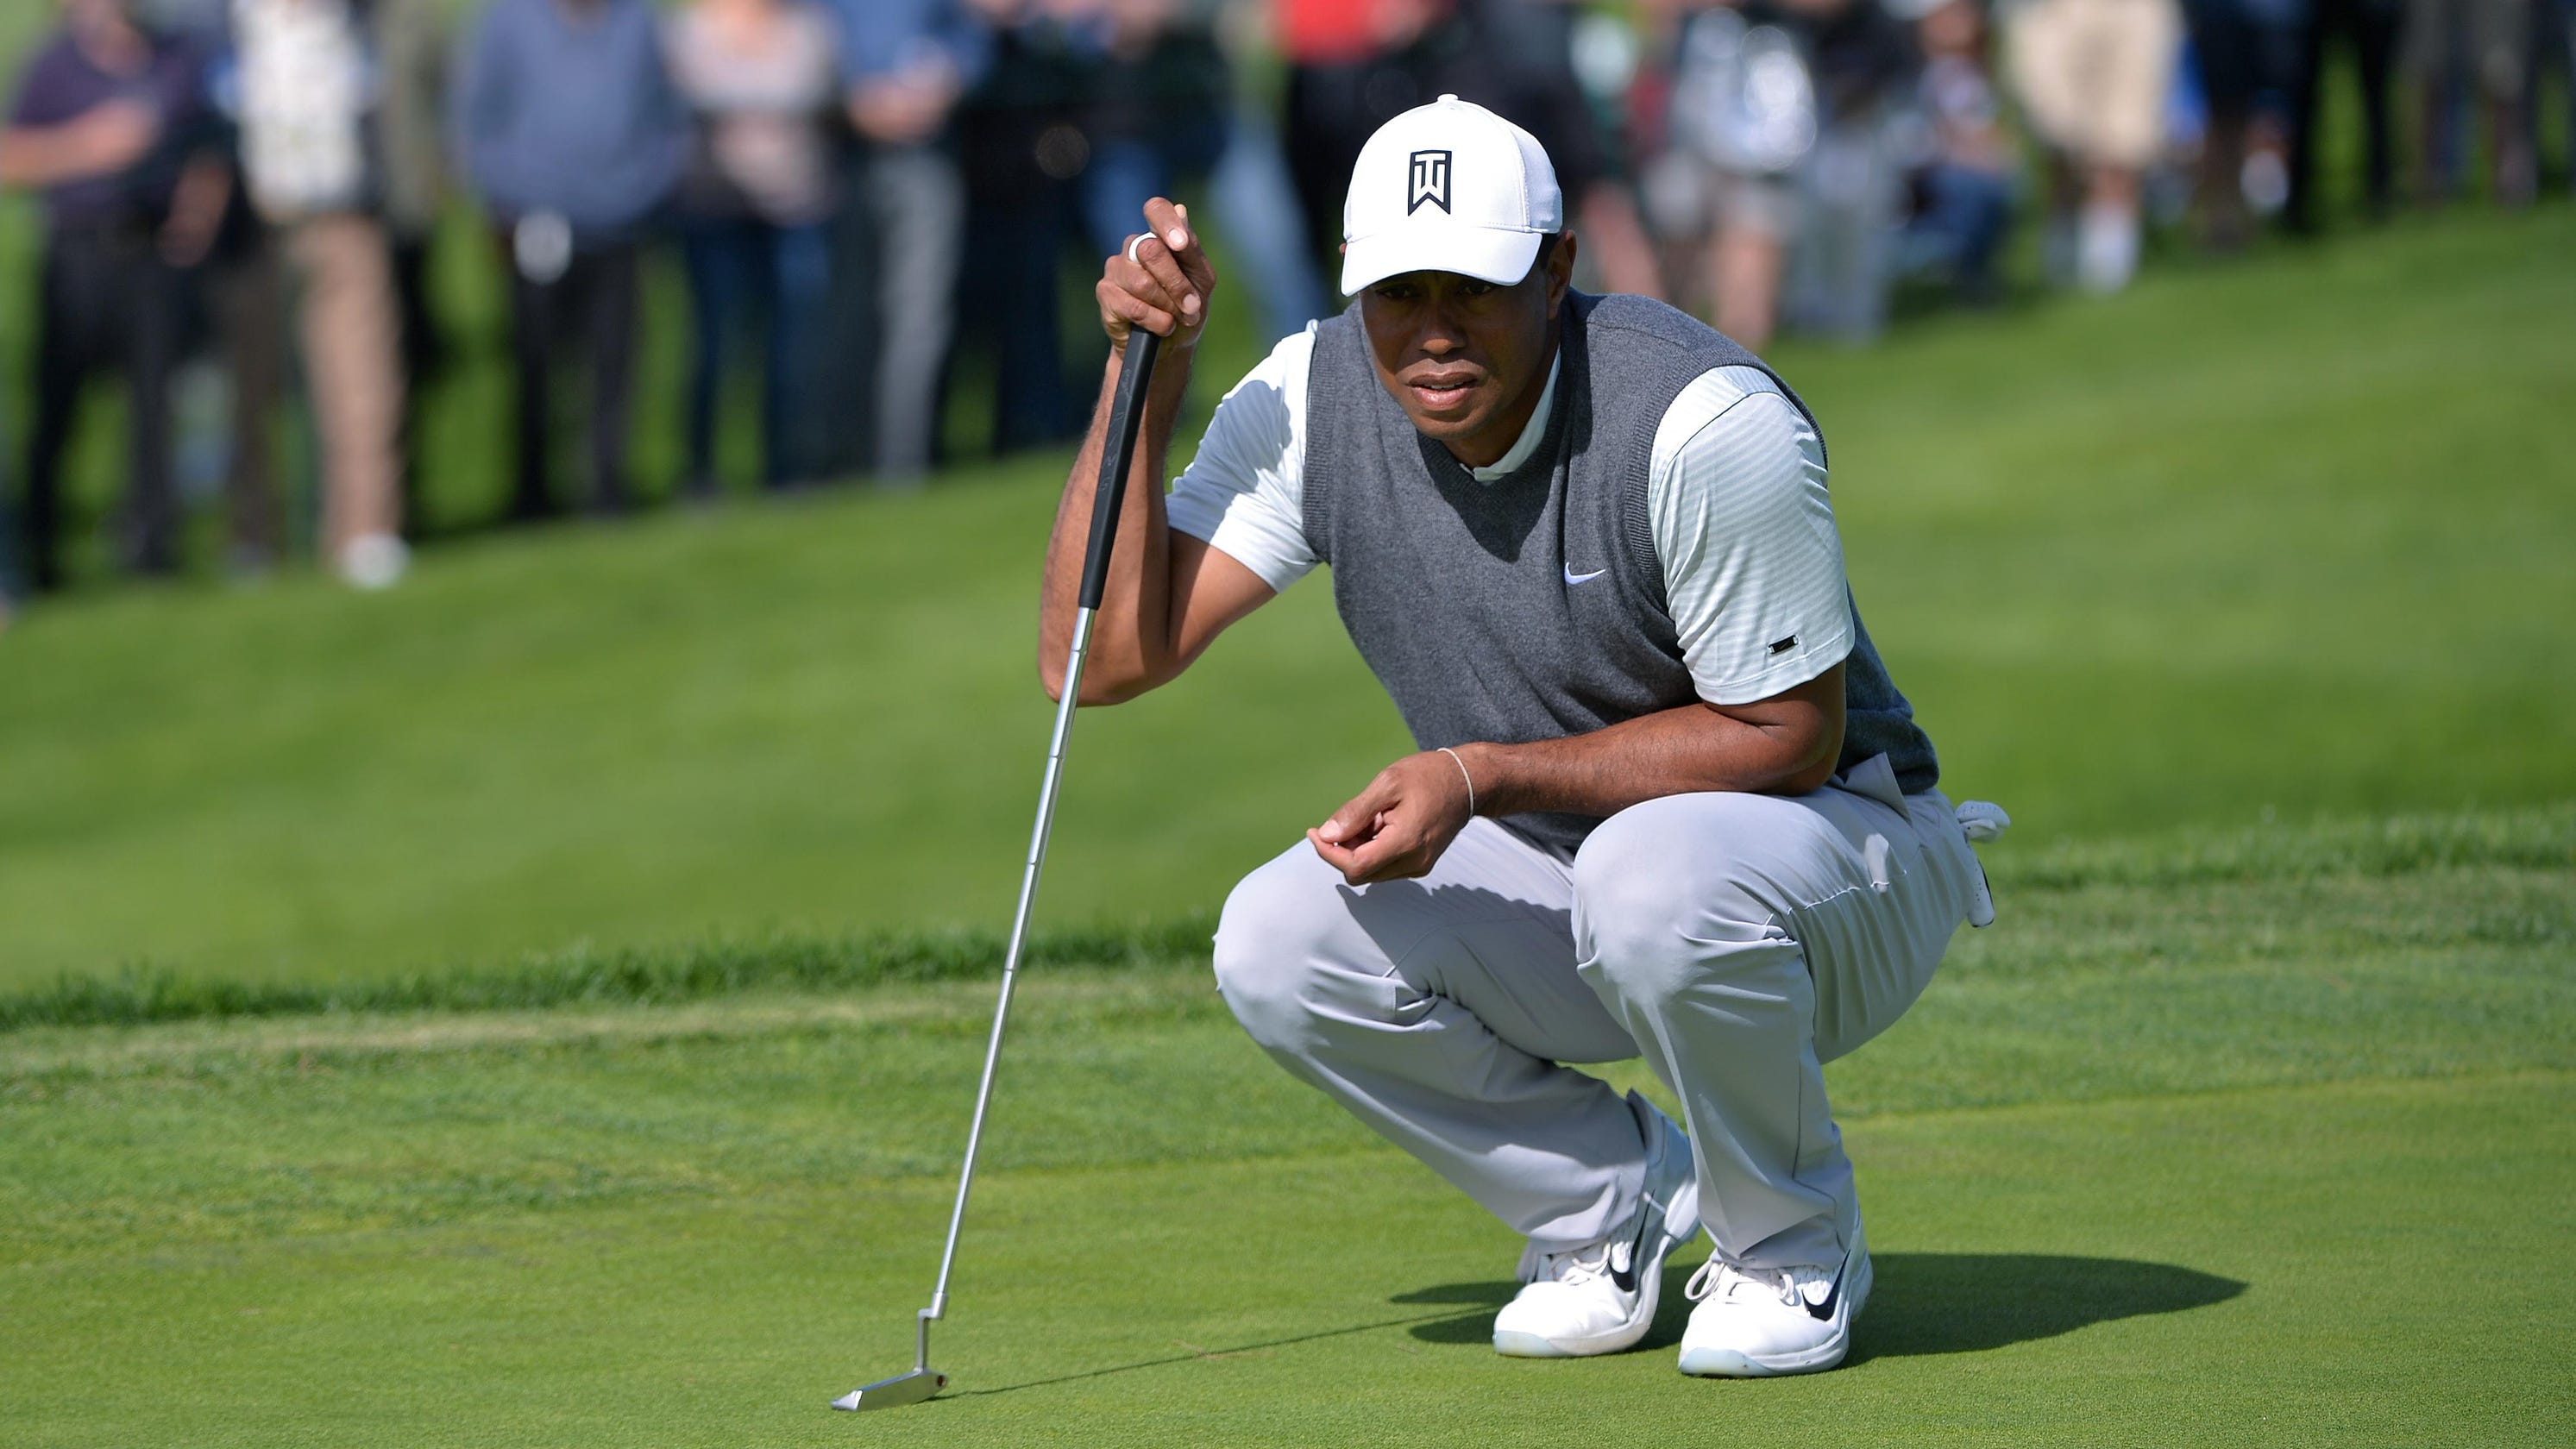 ae317b7553a81 Tiger Woods posts shaky but solid opening round at Torrey Pines